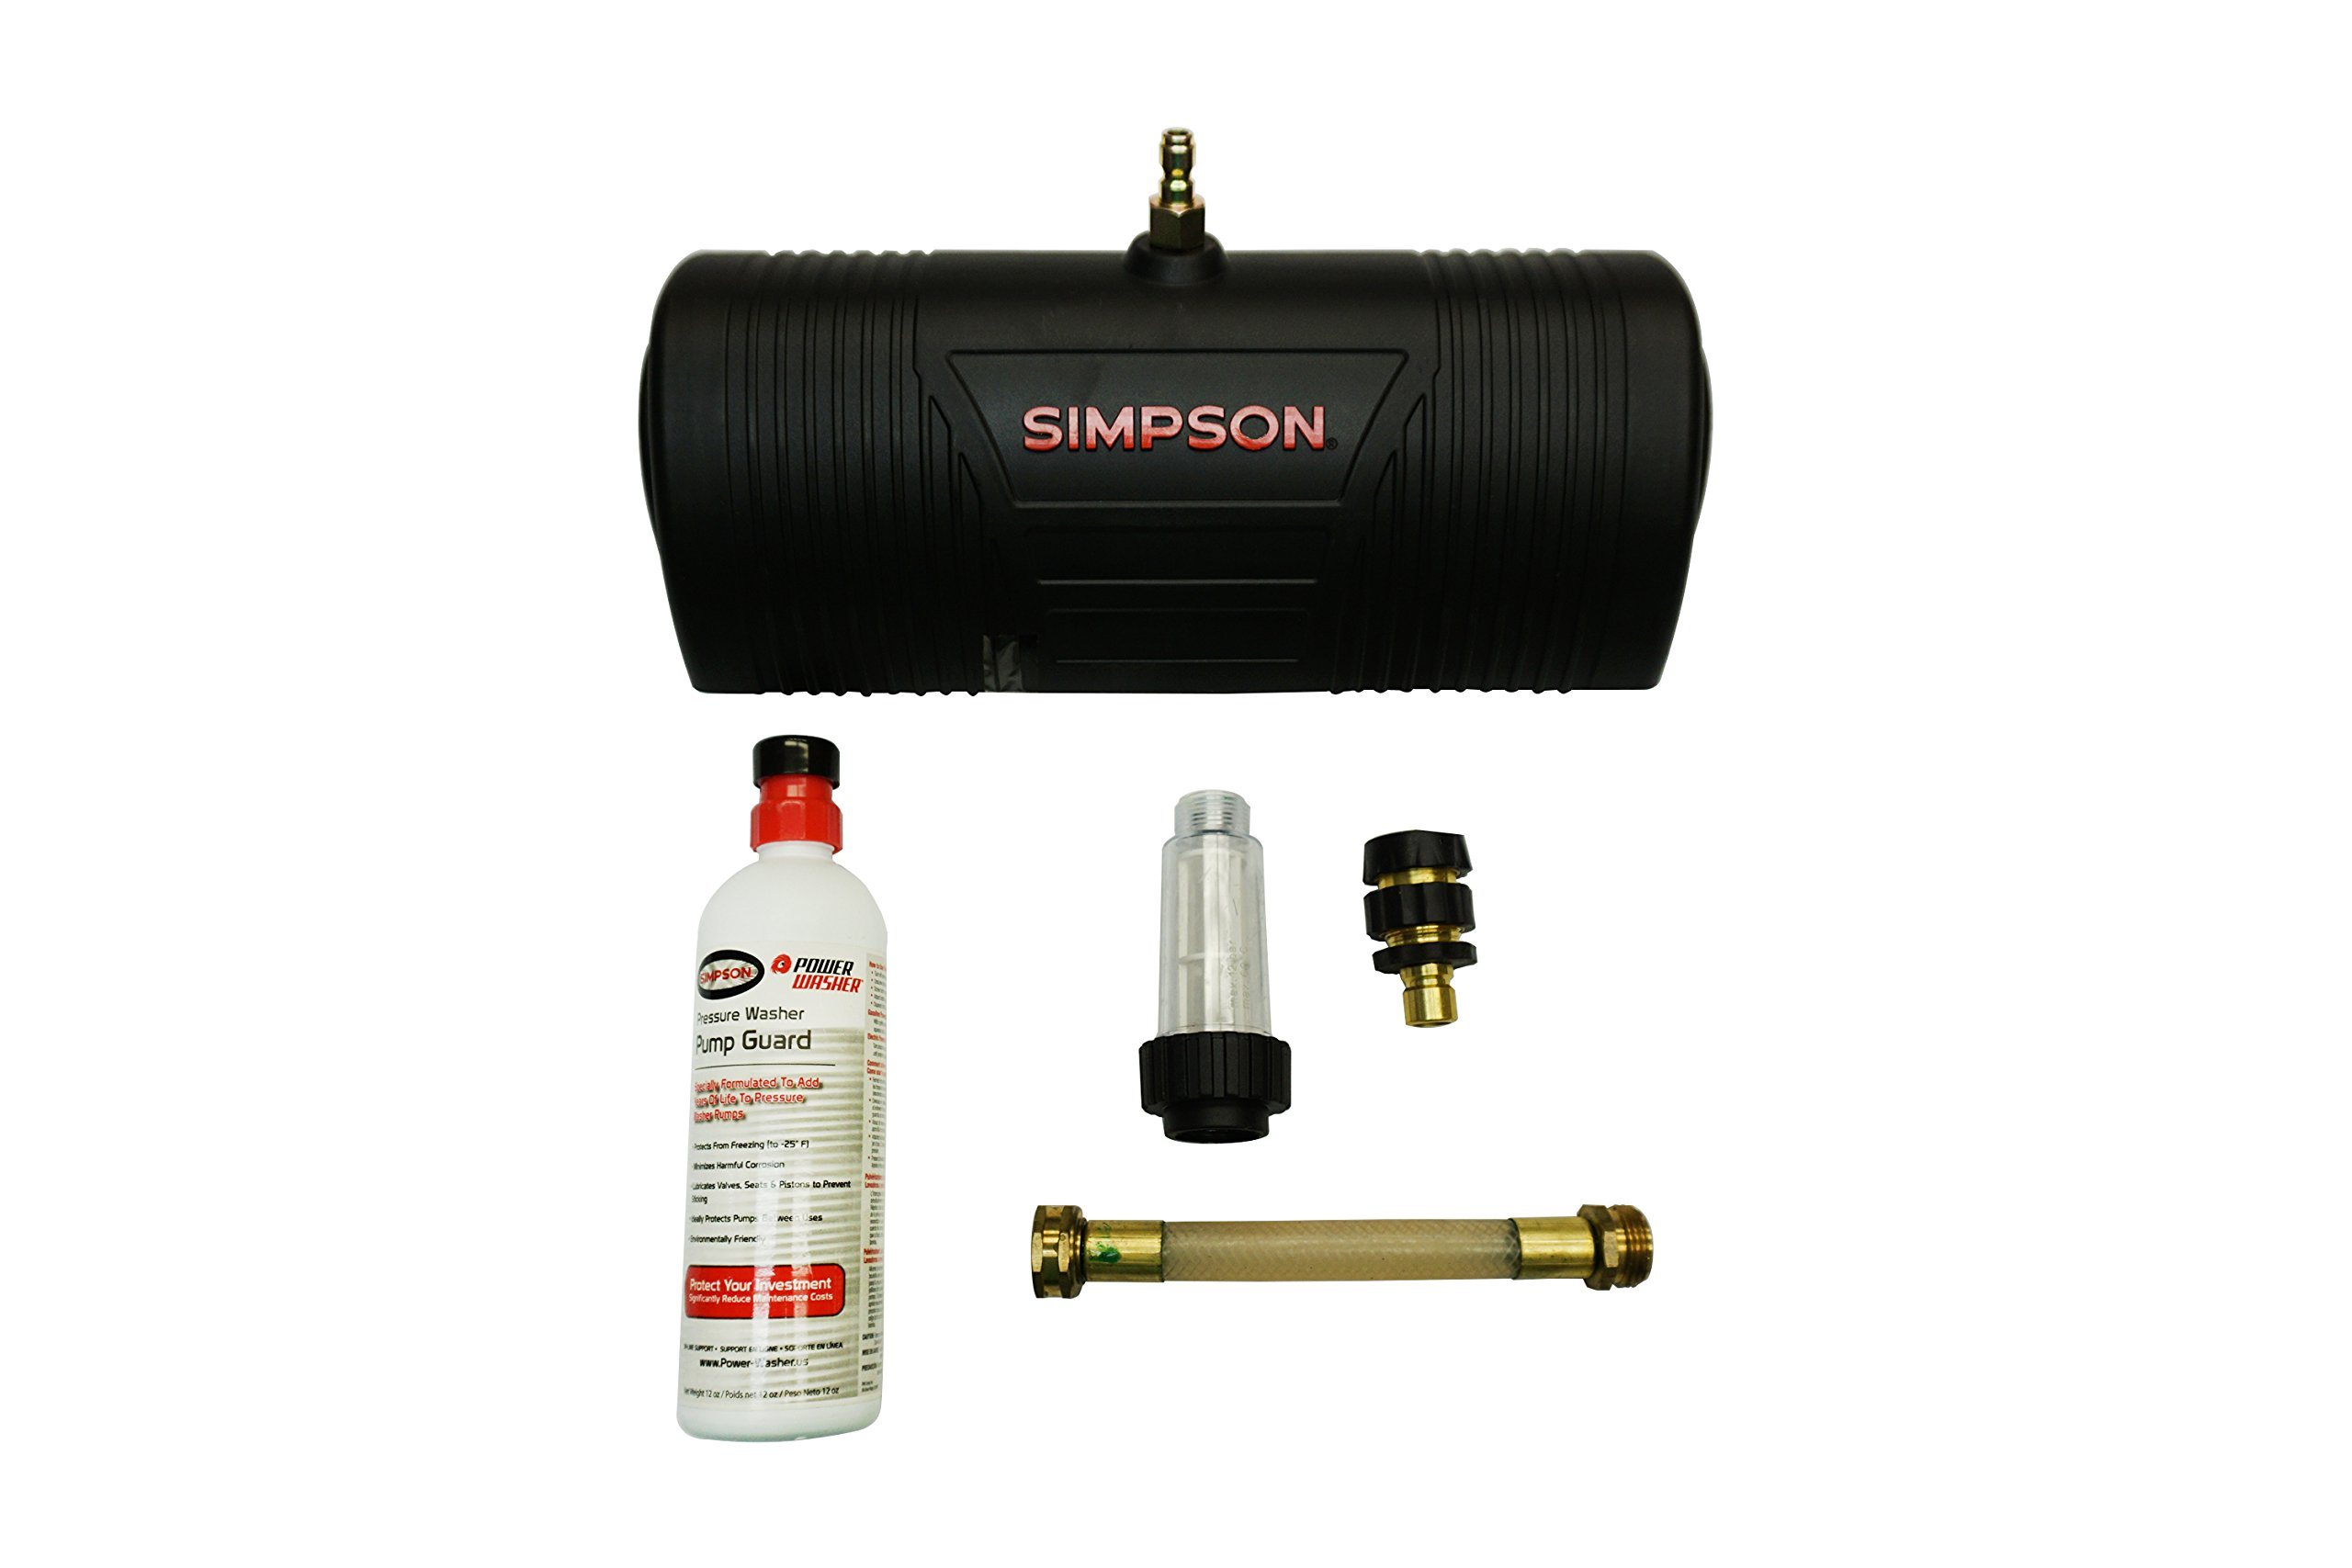 SIMPSON Cleaning 80132 Gas Pressure Washer Accessory Kit